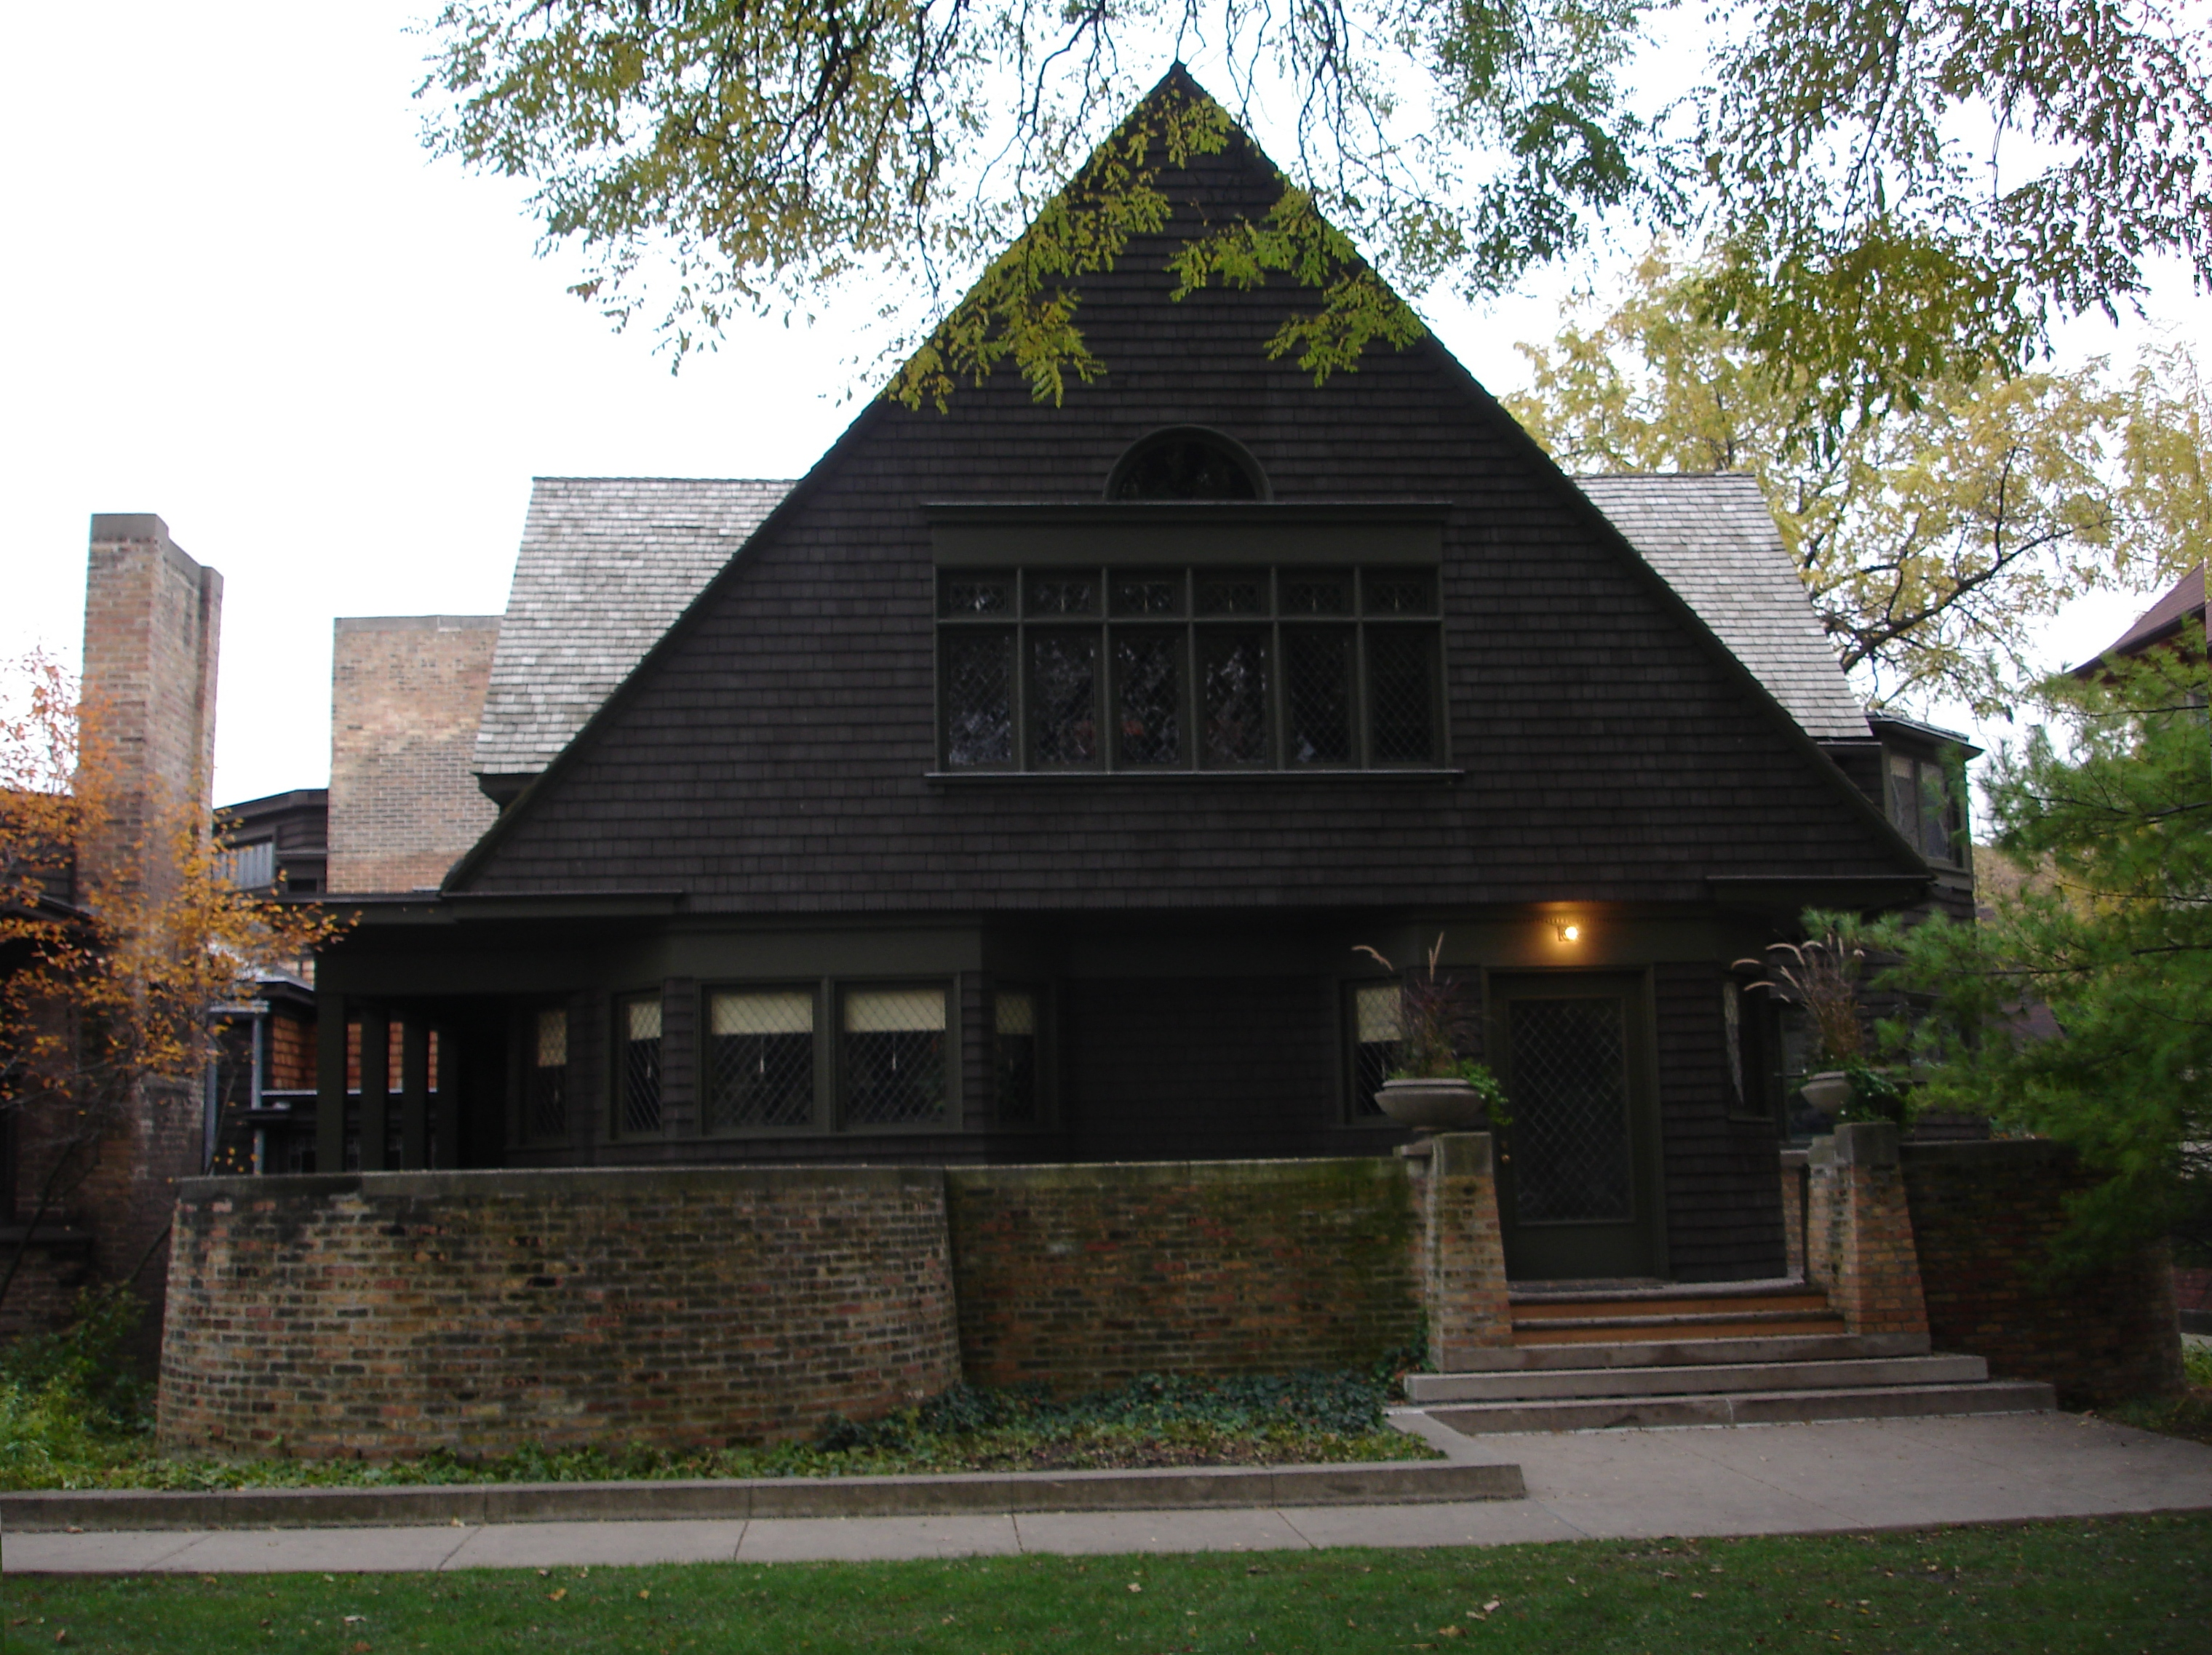 File:Frank Lloyd Wright Home and Studio (west side zoom).JPG - Wikimedia Commons